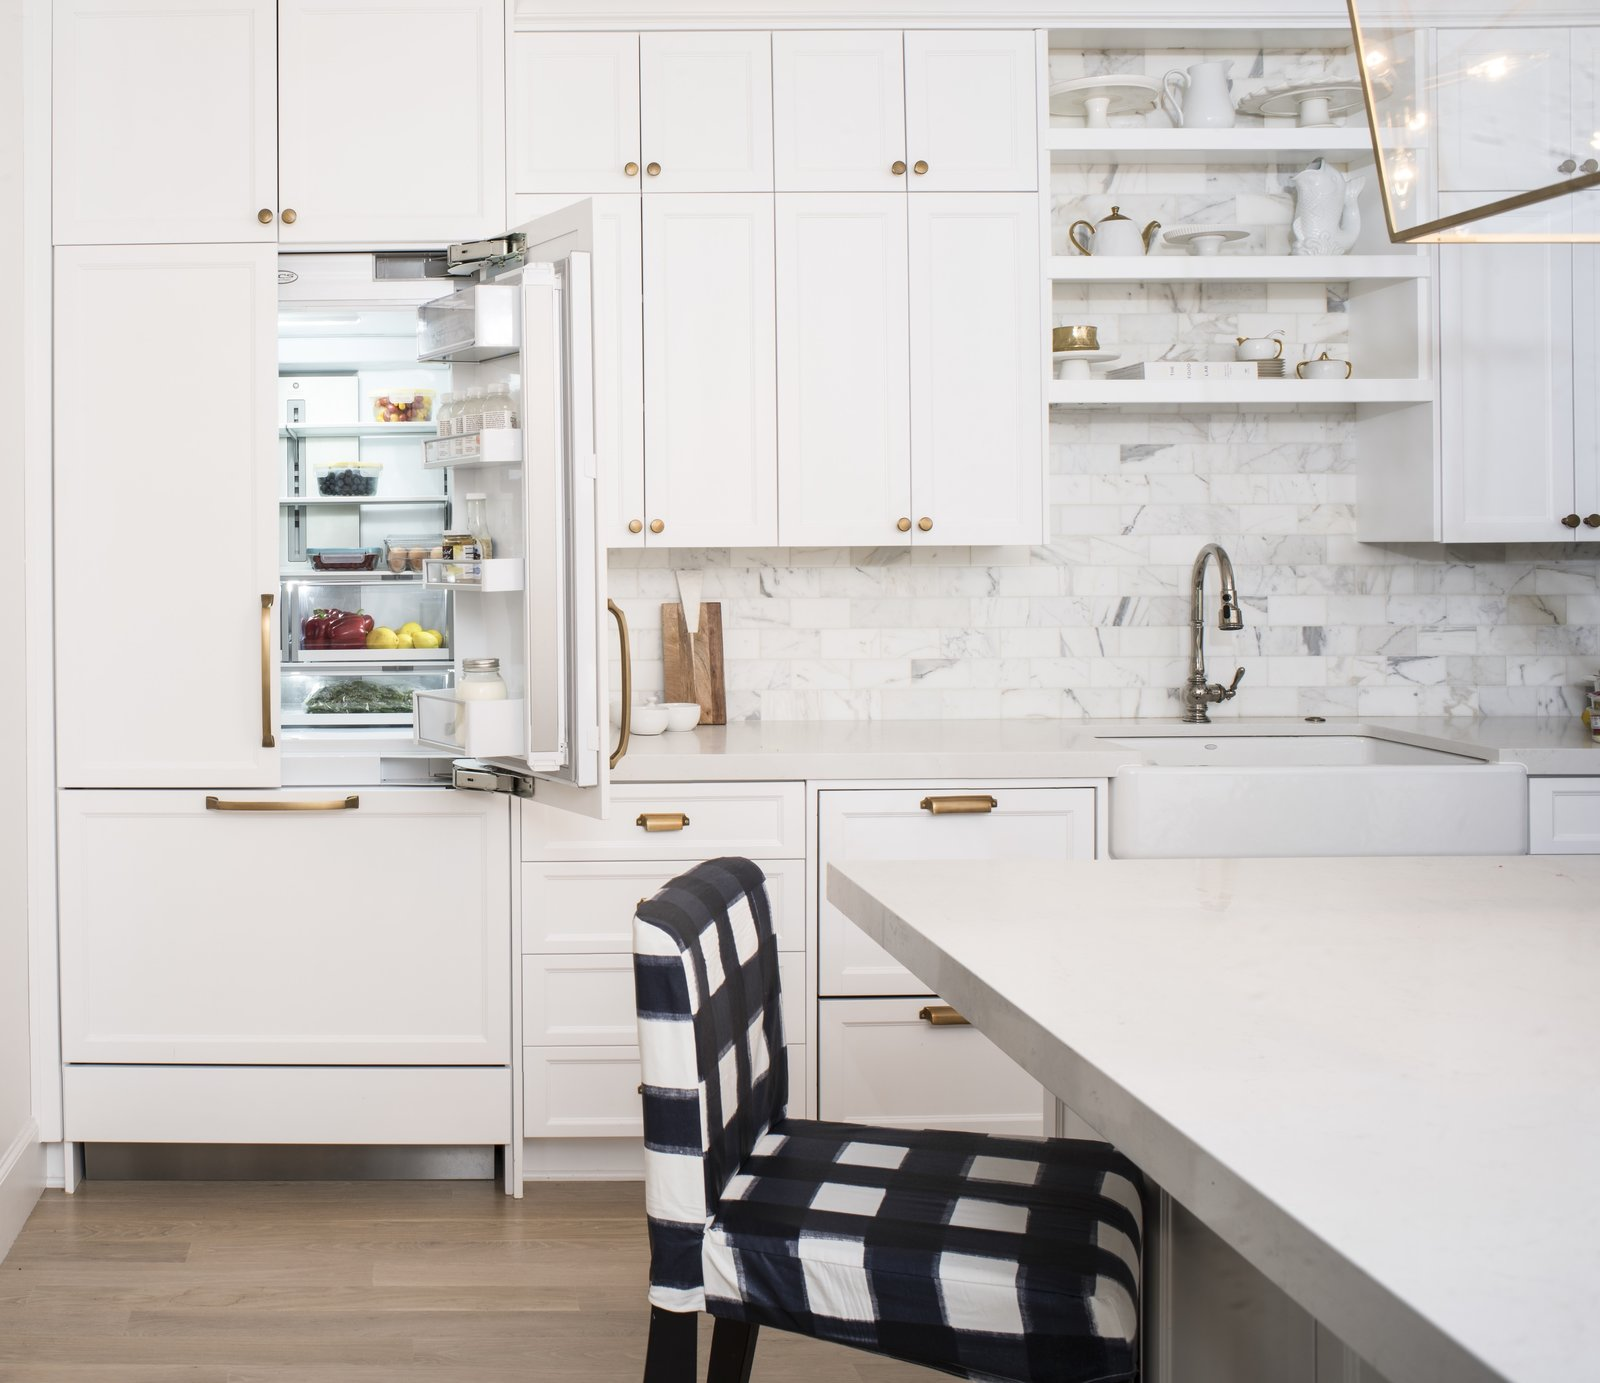 When closed, the integrated fridge becomes flush with the cabinetry. DCS's ActiveSmart Foodcare technology monitors fridge use and adapts the temperature to keep food fresh.  Photo 7 of 8 in An Interior Designer's Streamlined Kitchen